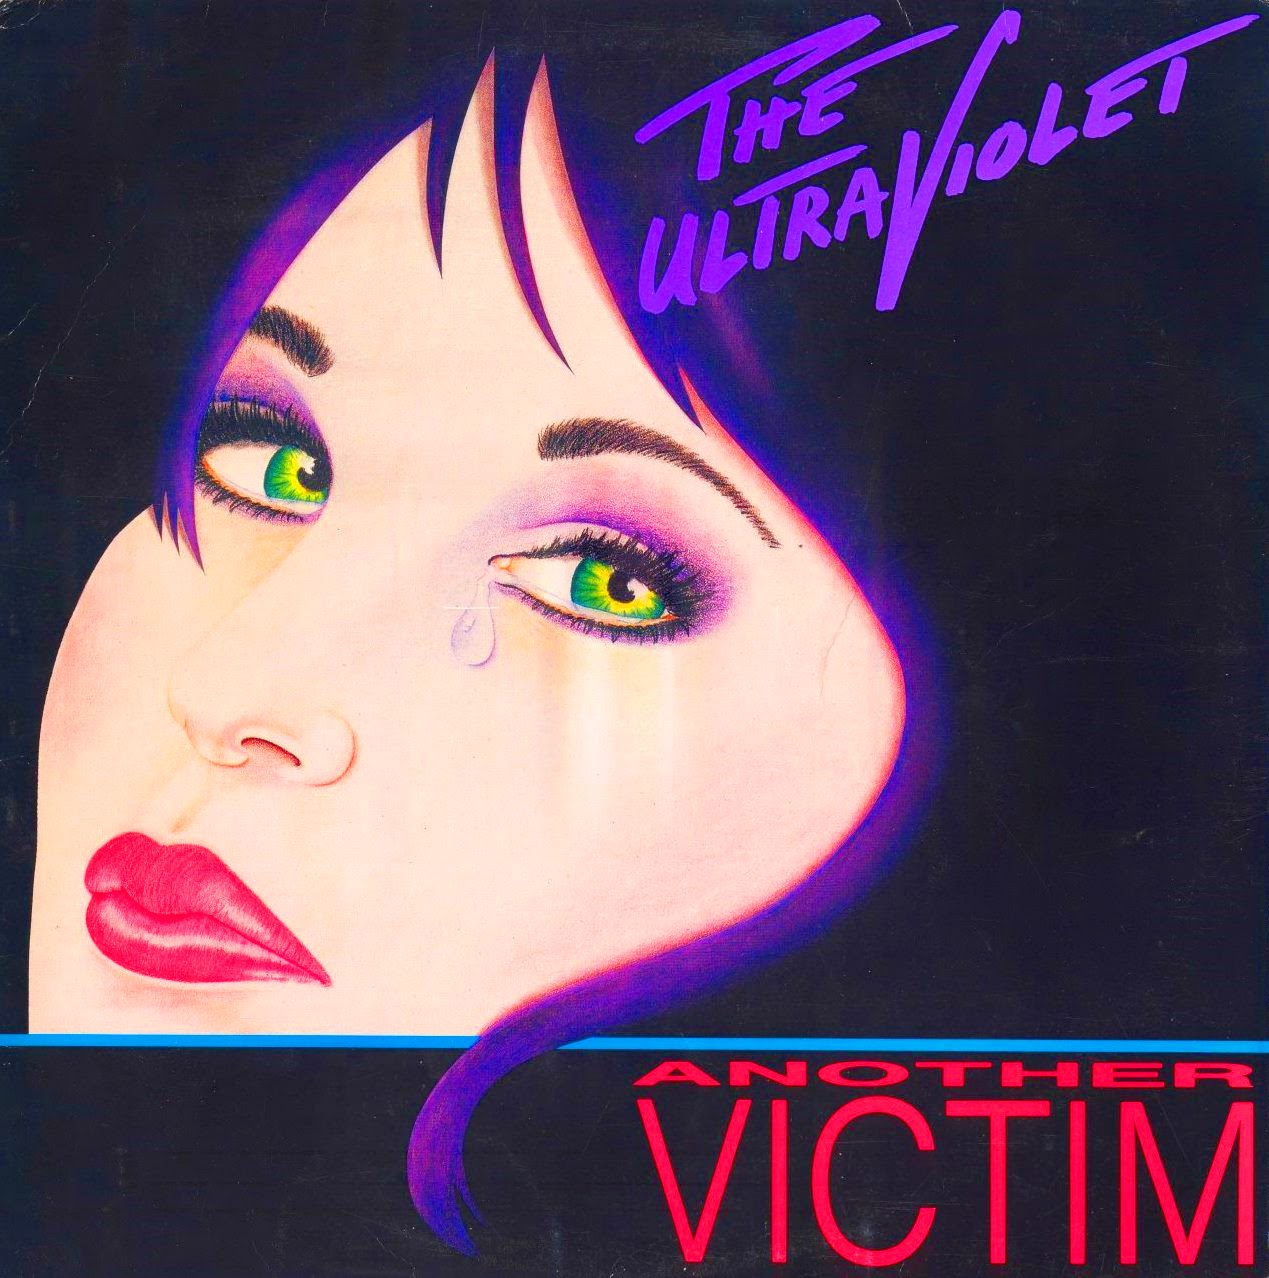 The Ultraviolet Another victim 1986